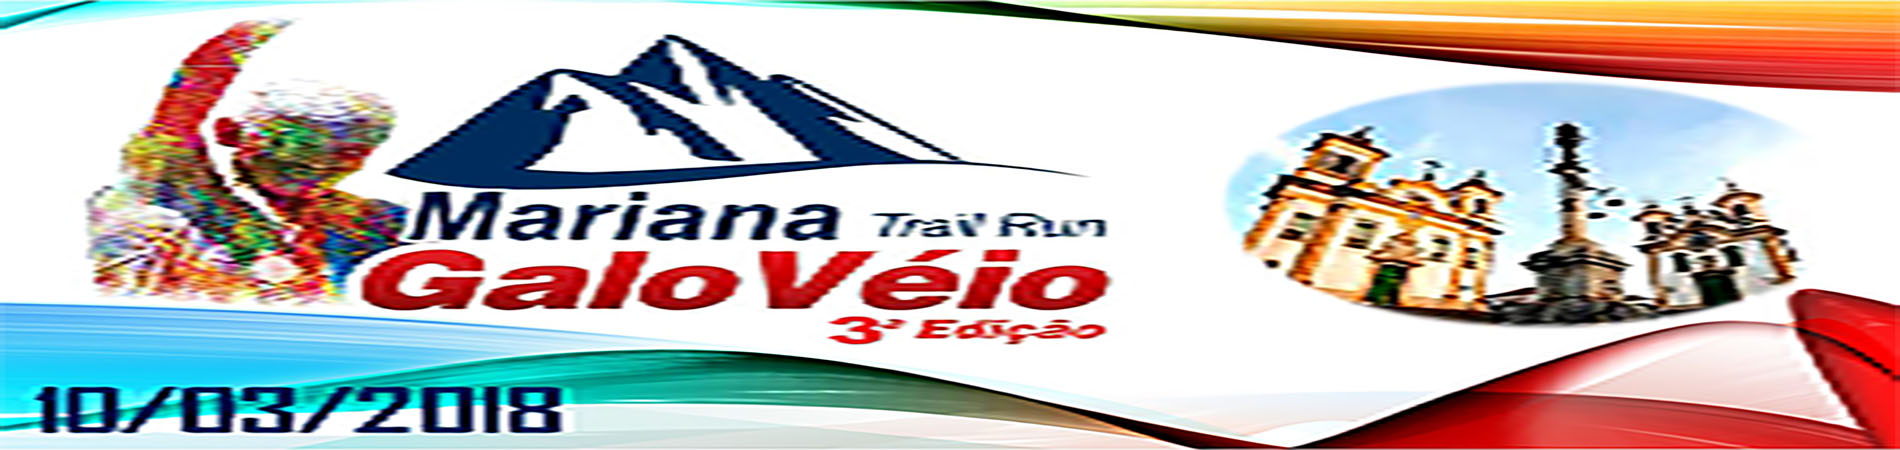 MARIANA TRAIL RUN GALO VEIO - 2018